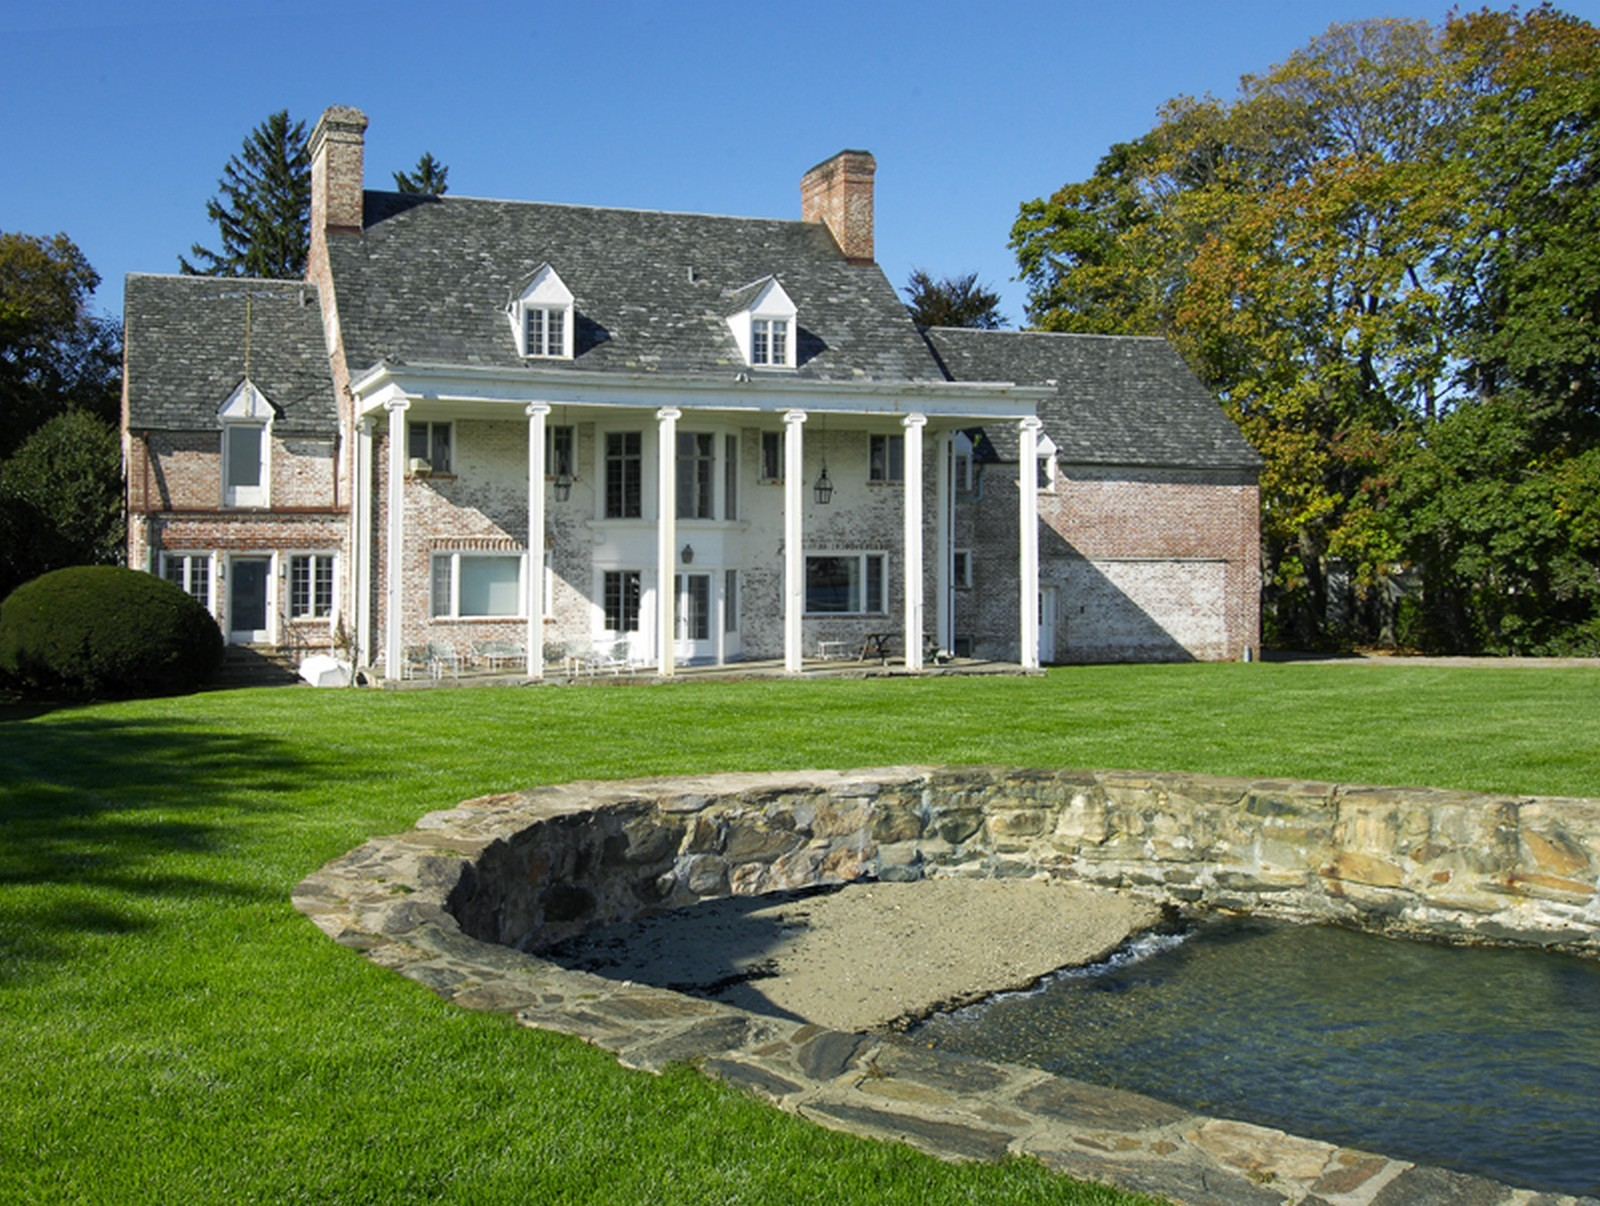 55 Binney Lane Old Greenwich Ct 06870 Virtual Tour